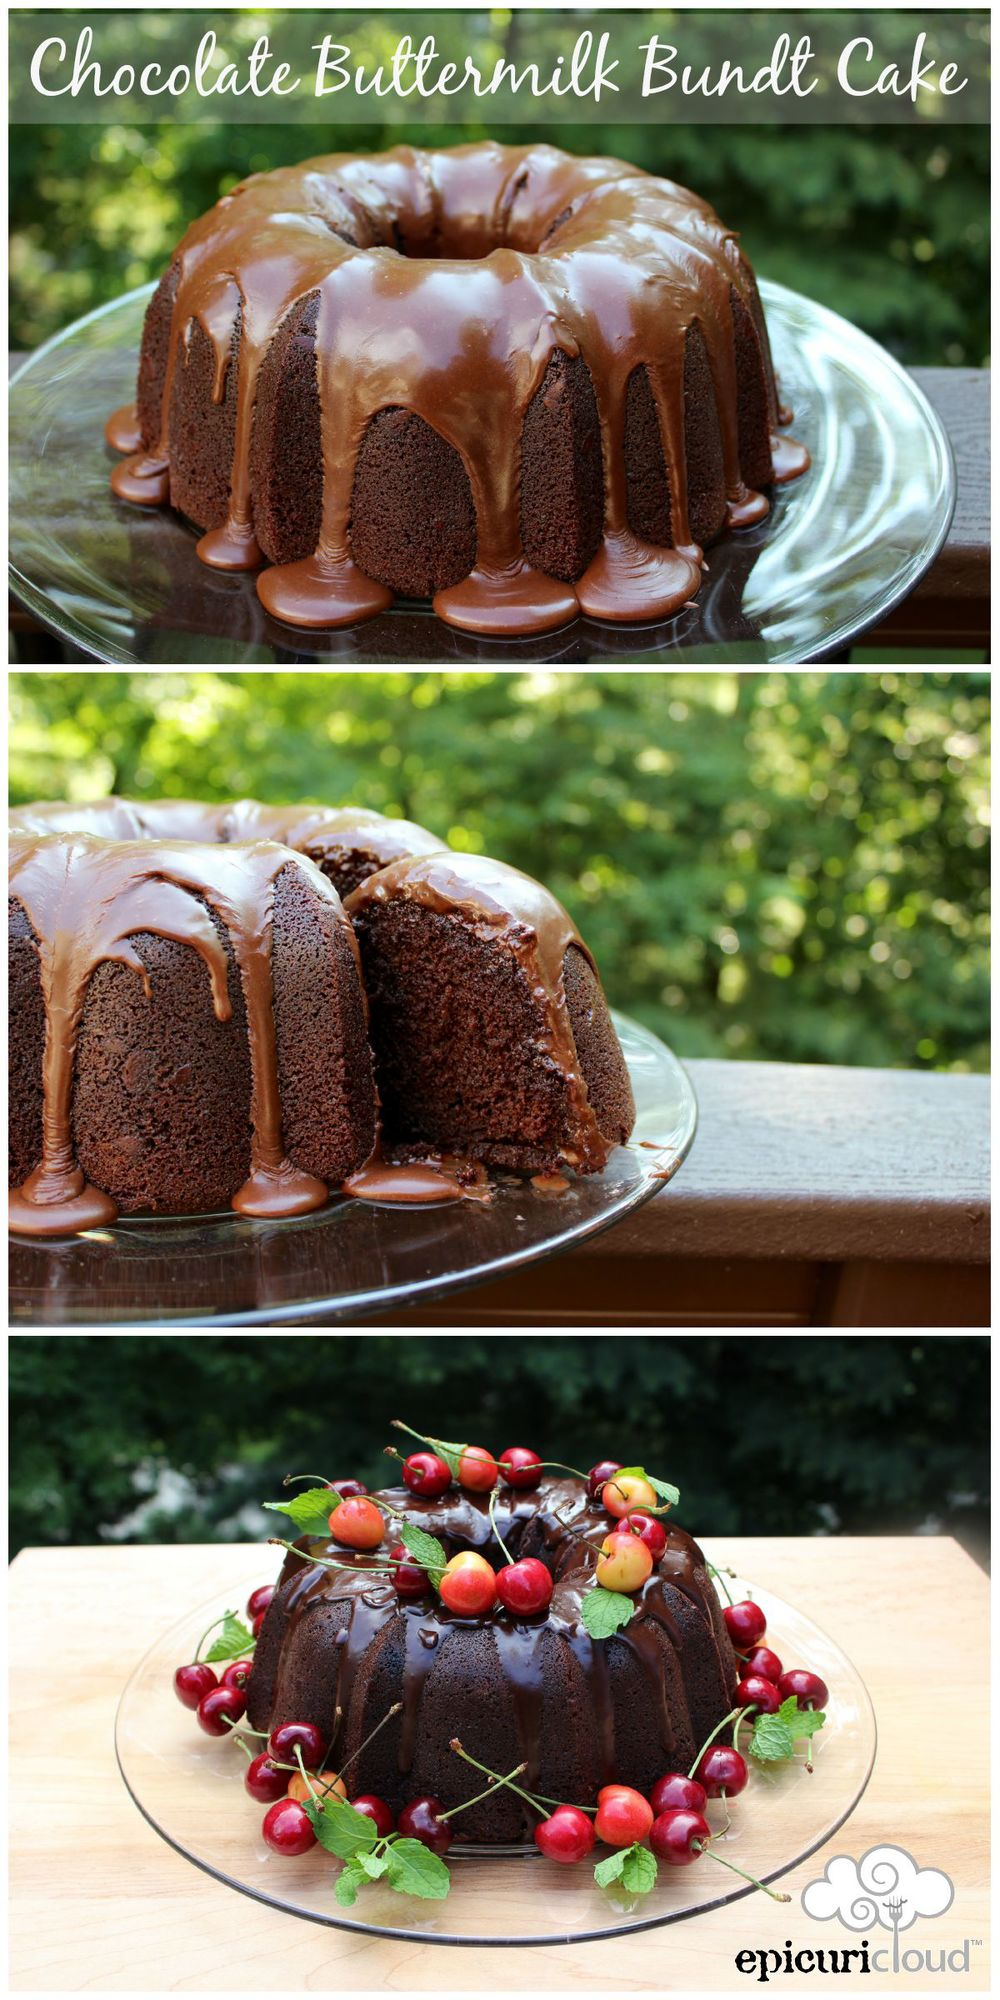 Chocolate Buttermilk Bundt Cake - Epicuricloud.com